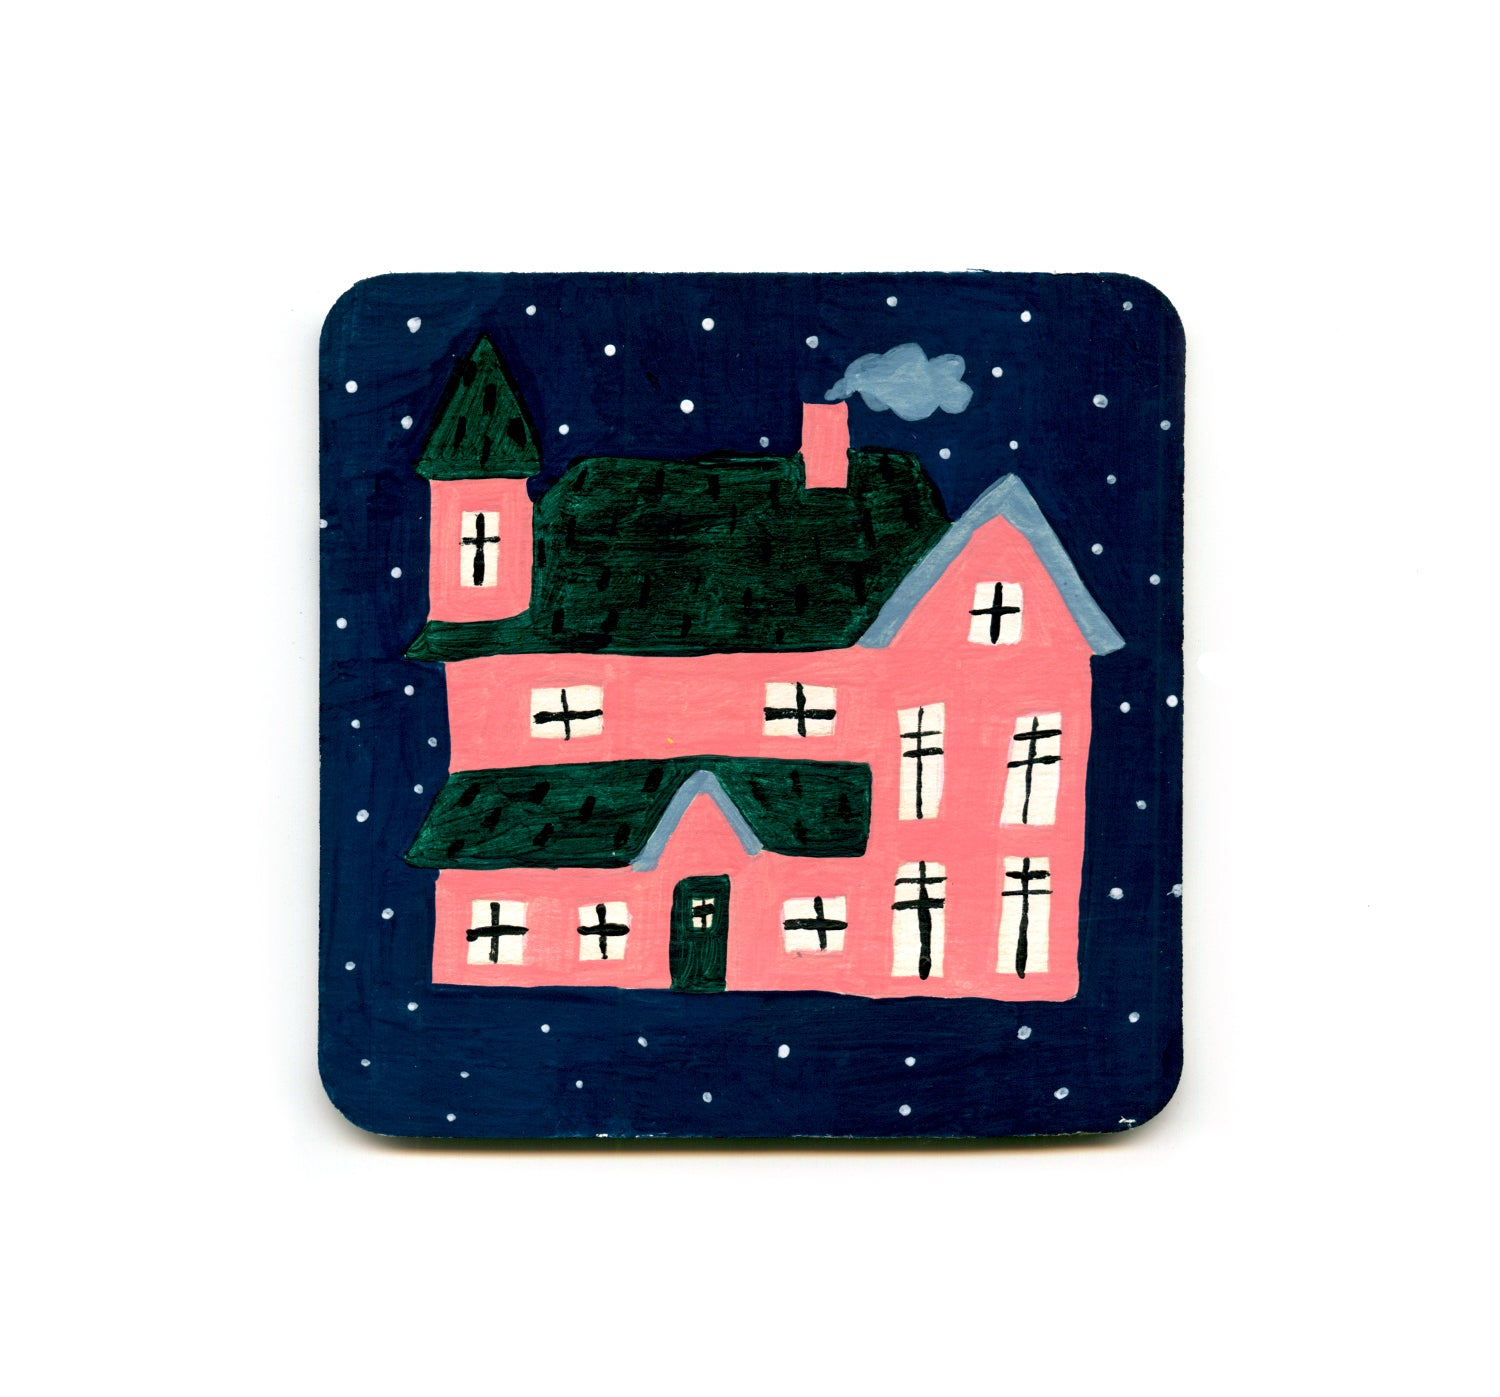 S1 Jennifer Bouron - The House Coaster